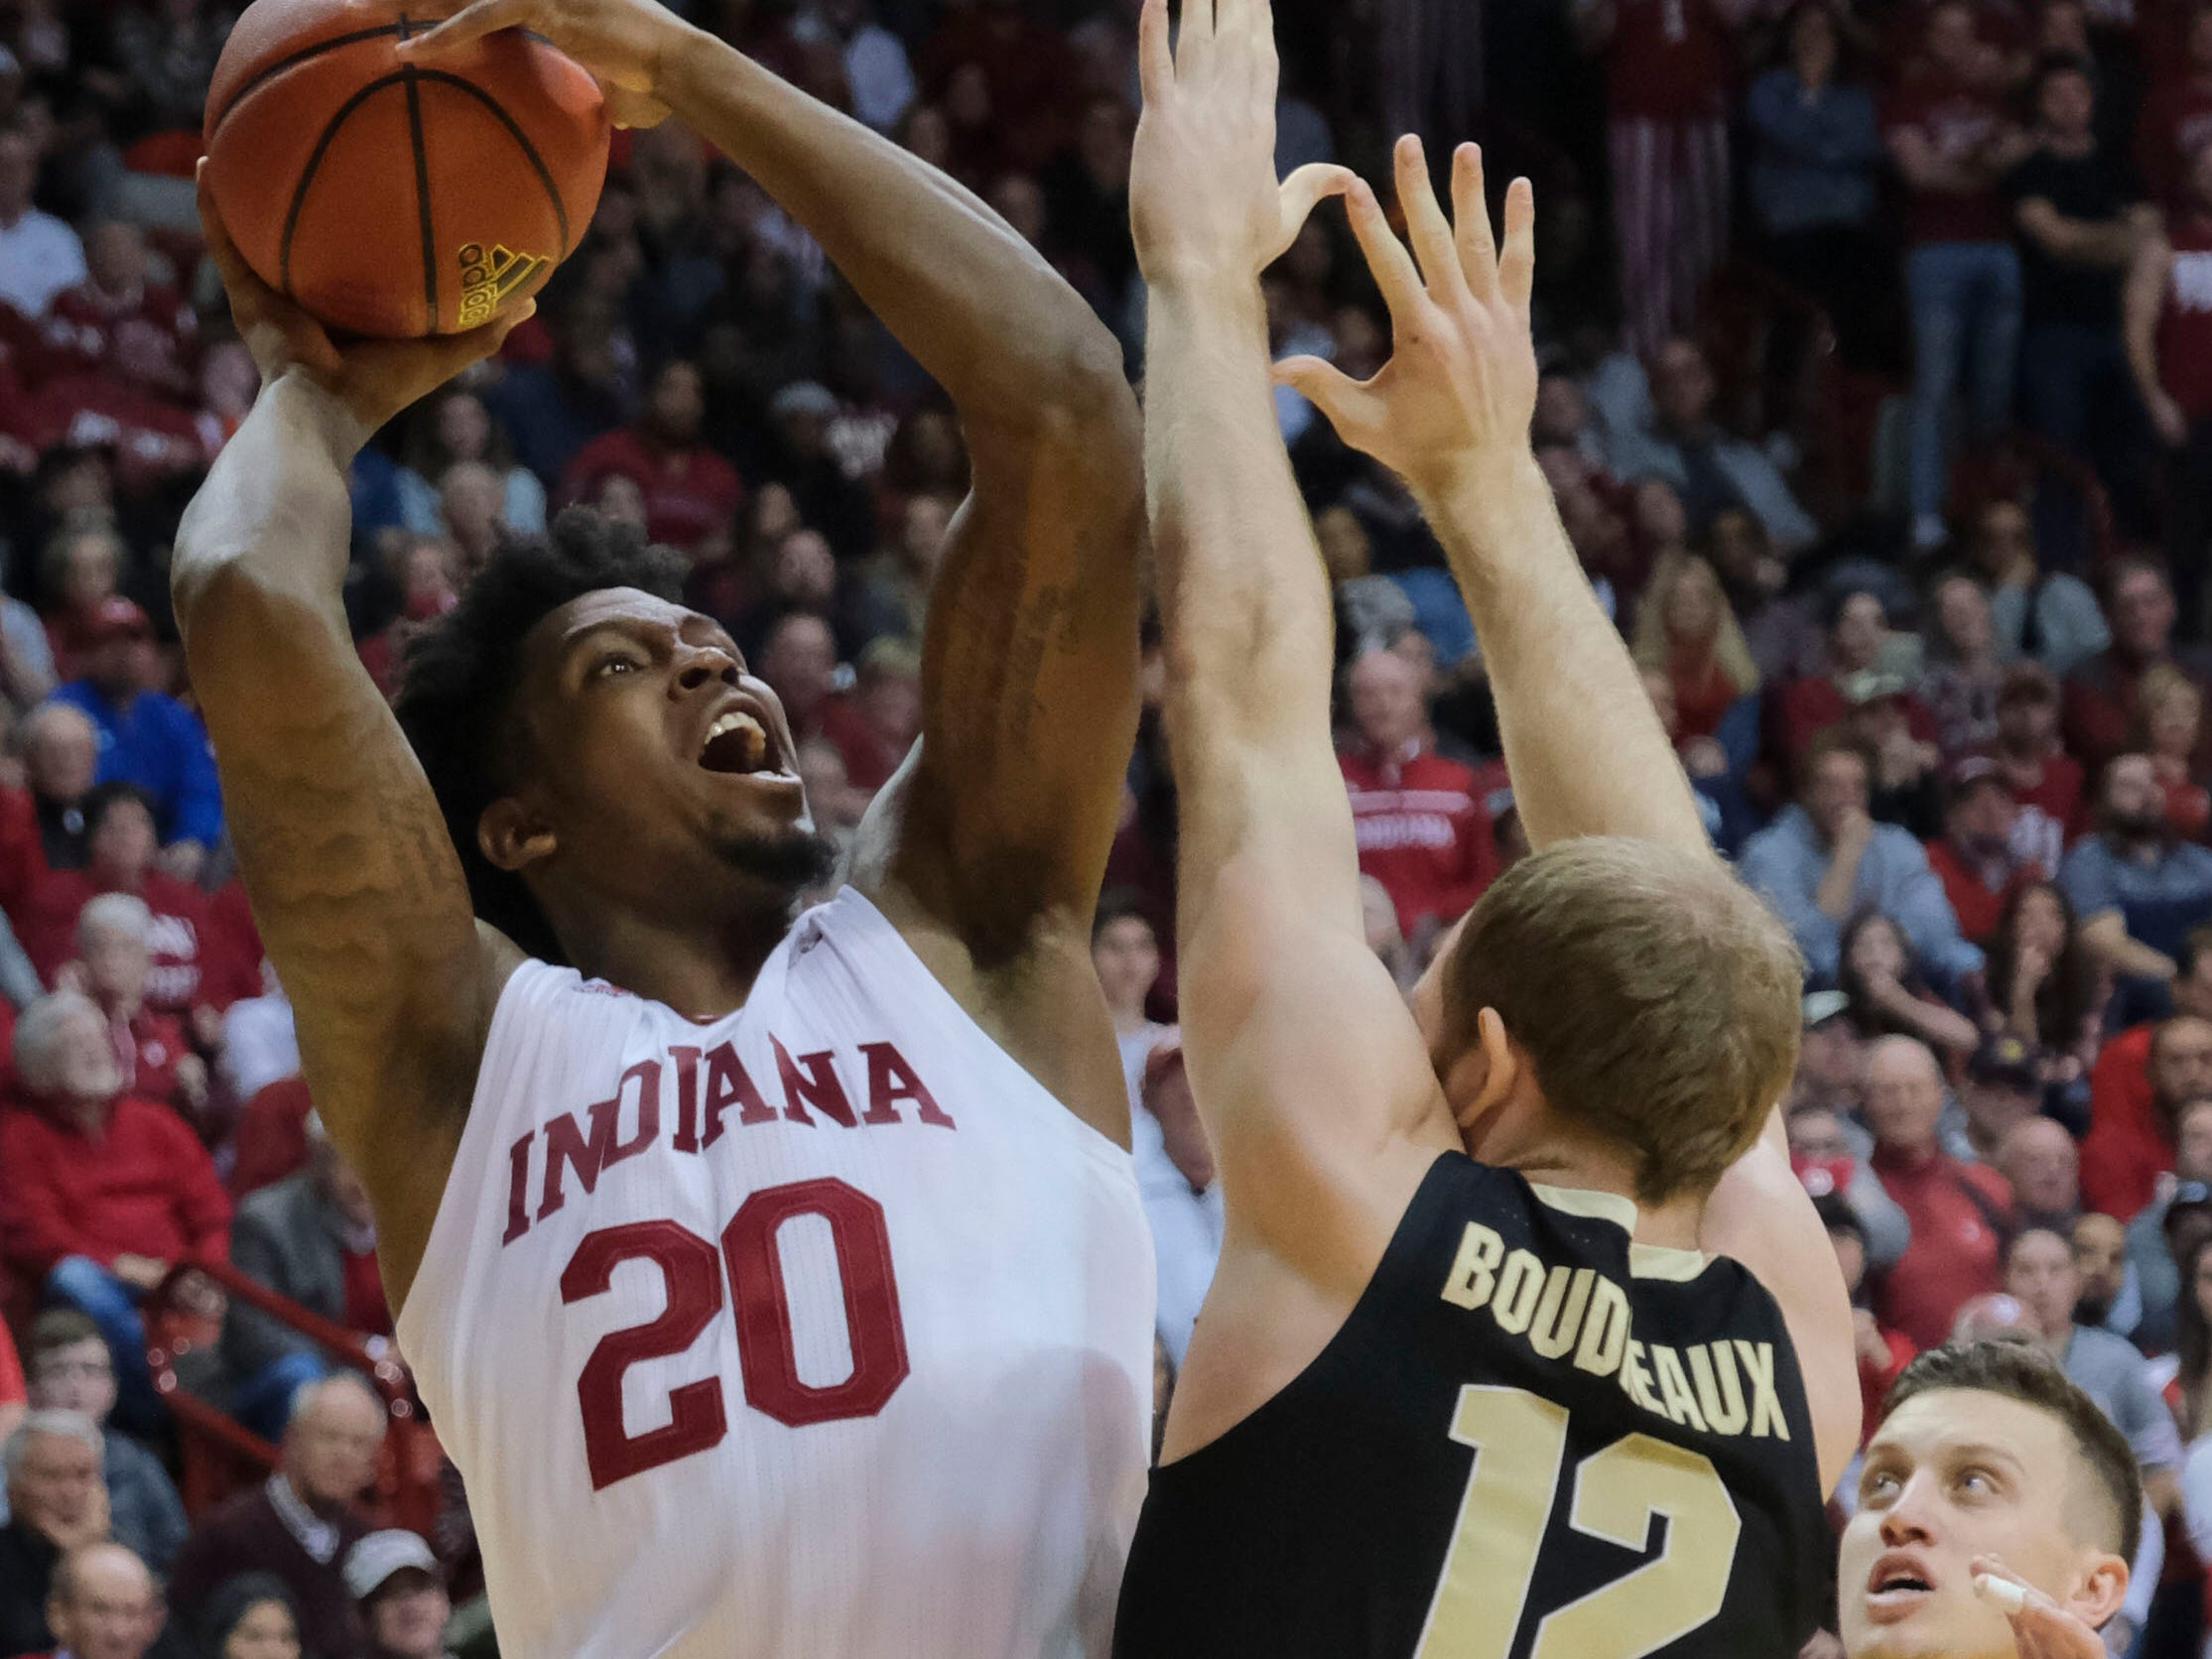 Indiana forward De'Ron Davis (20) shoots over Purdue forward Evan Boudreaux (12) during the second half of an NCAA college basketball game in Bloomington, Ind., Tuesday, Feb. 19, 2019. Purdue won 48-46.